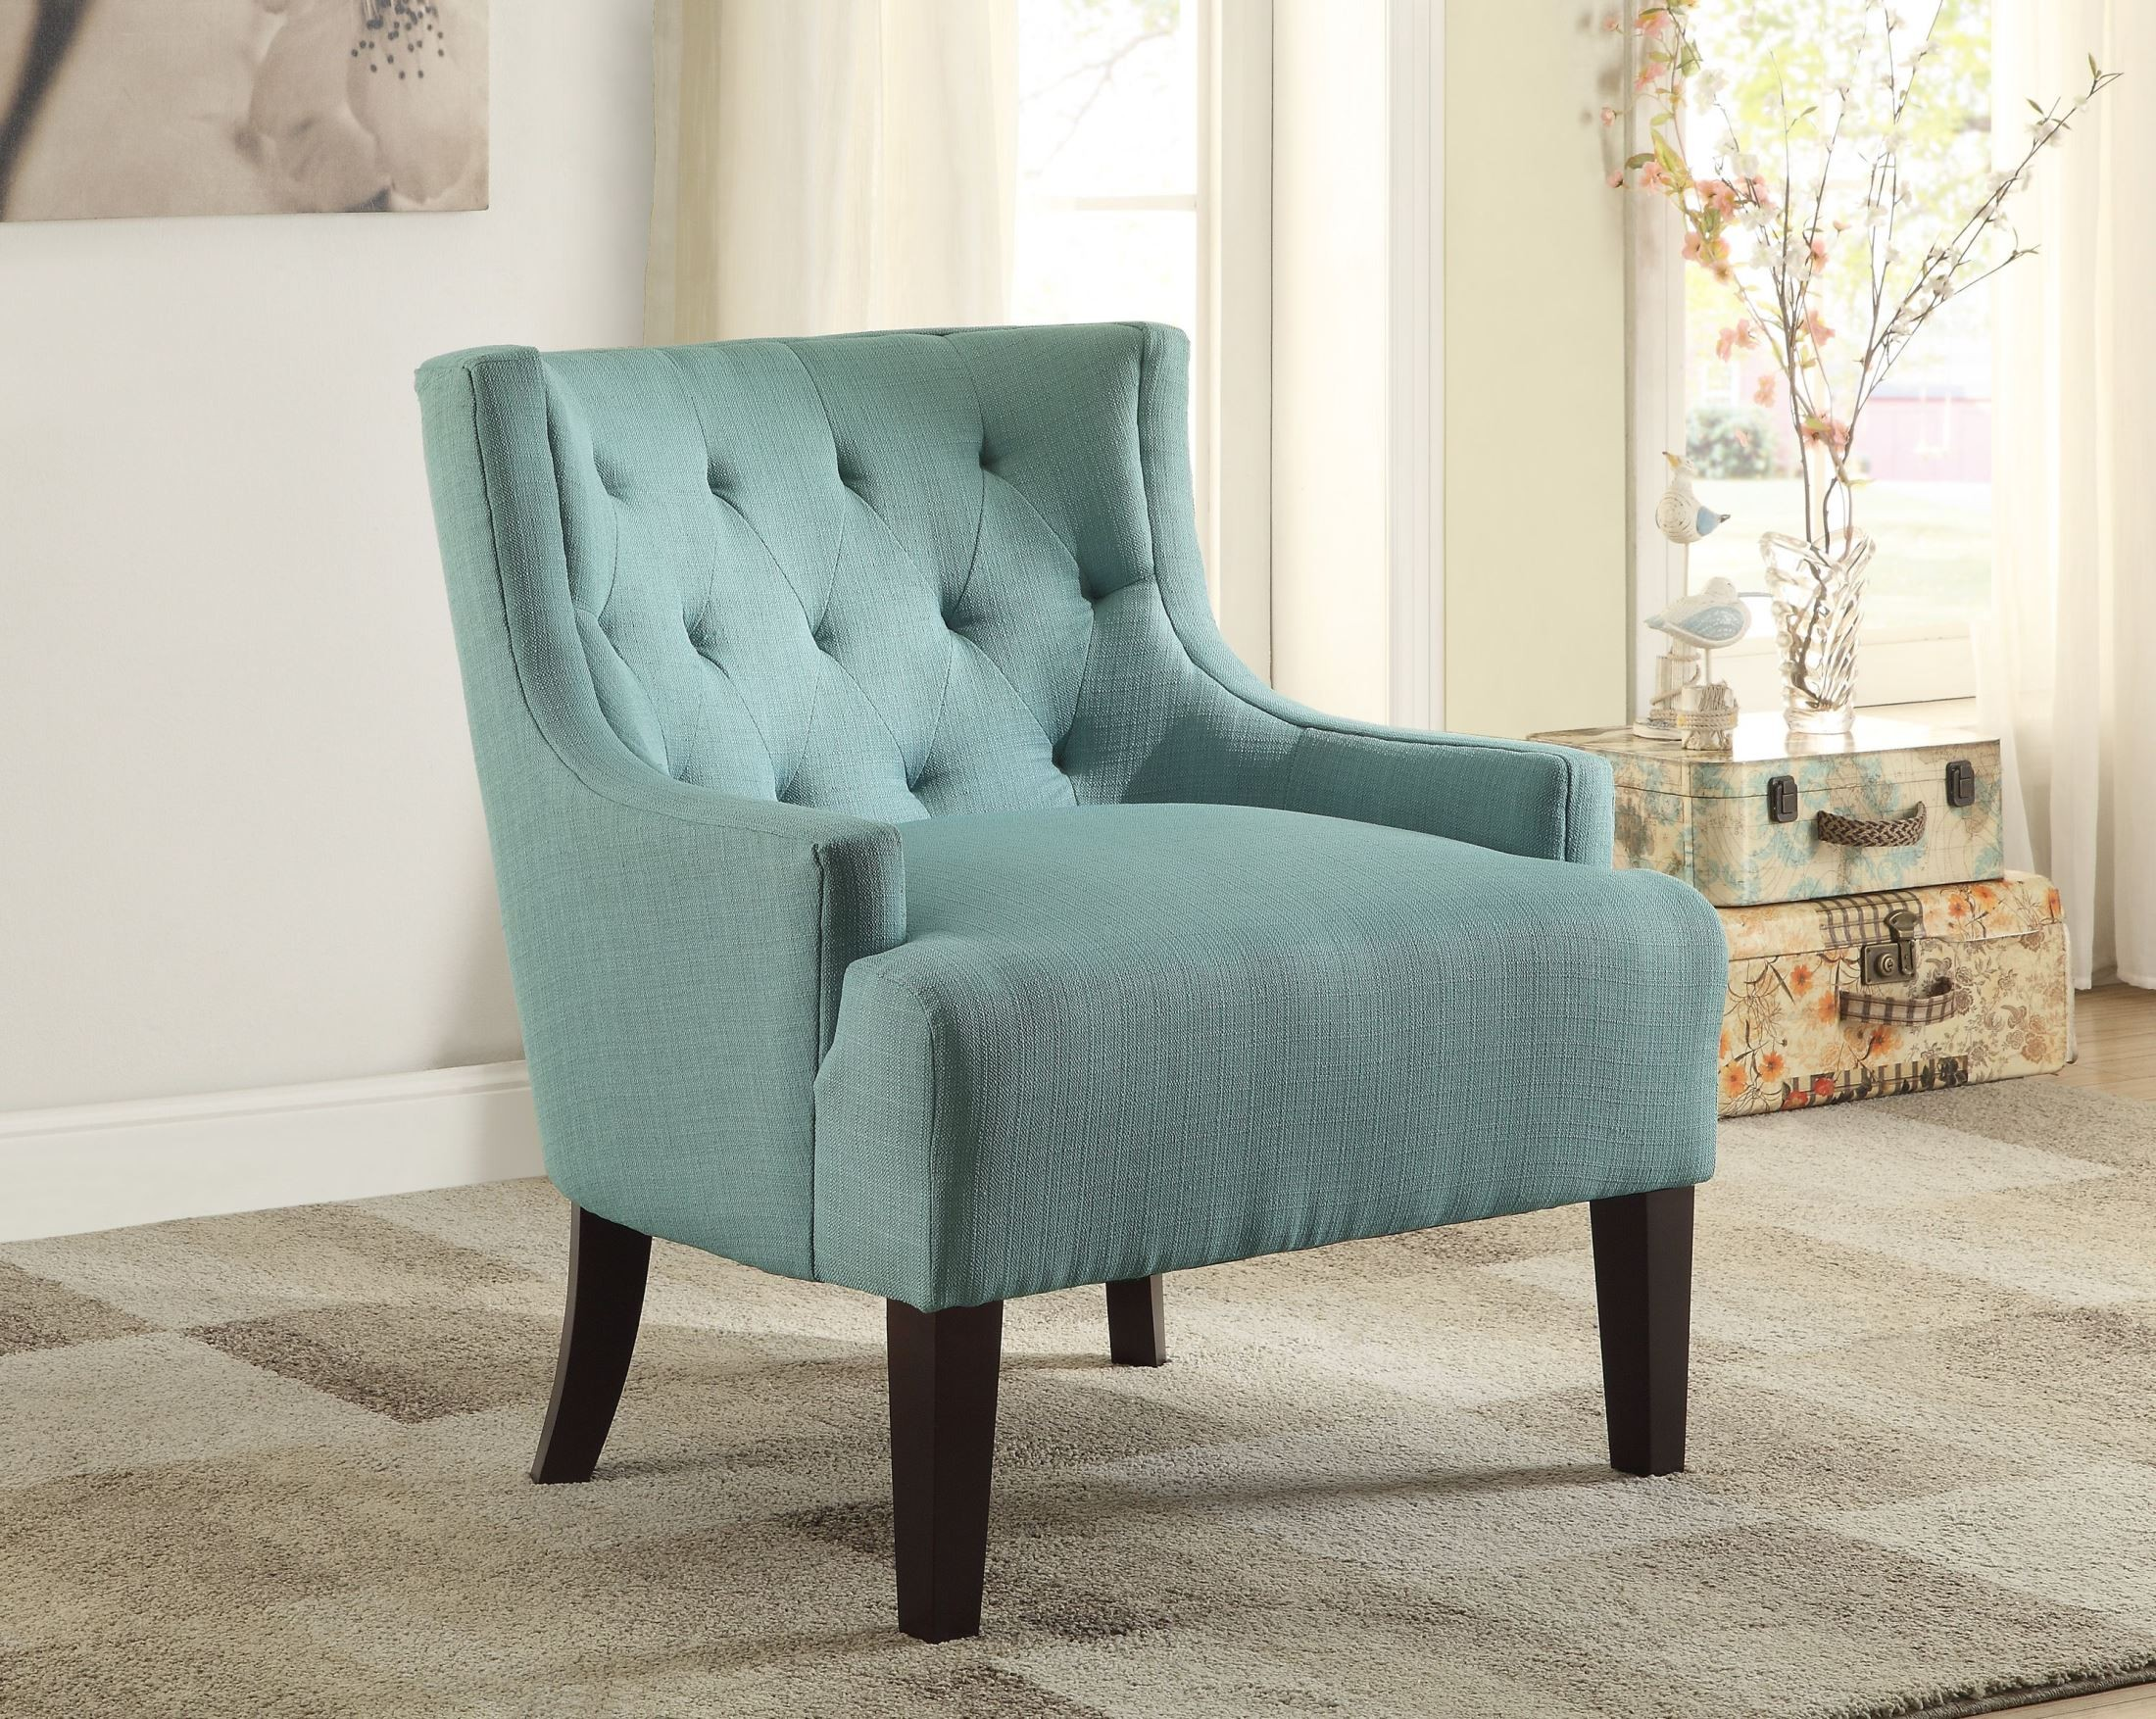 Dulce Teal Accent Chair From Homelegance 1233tl